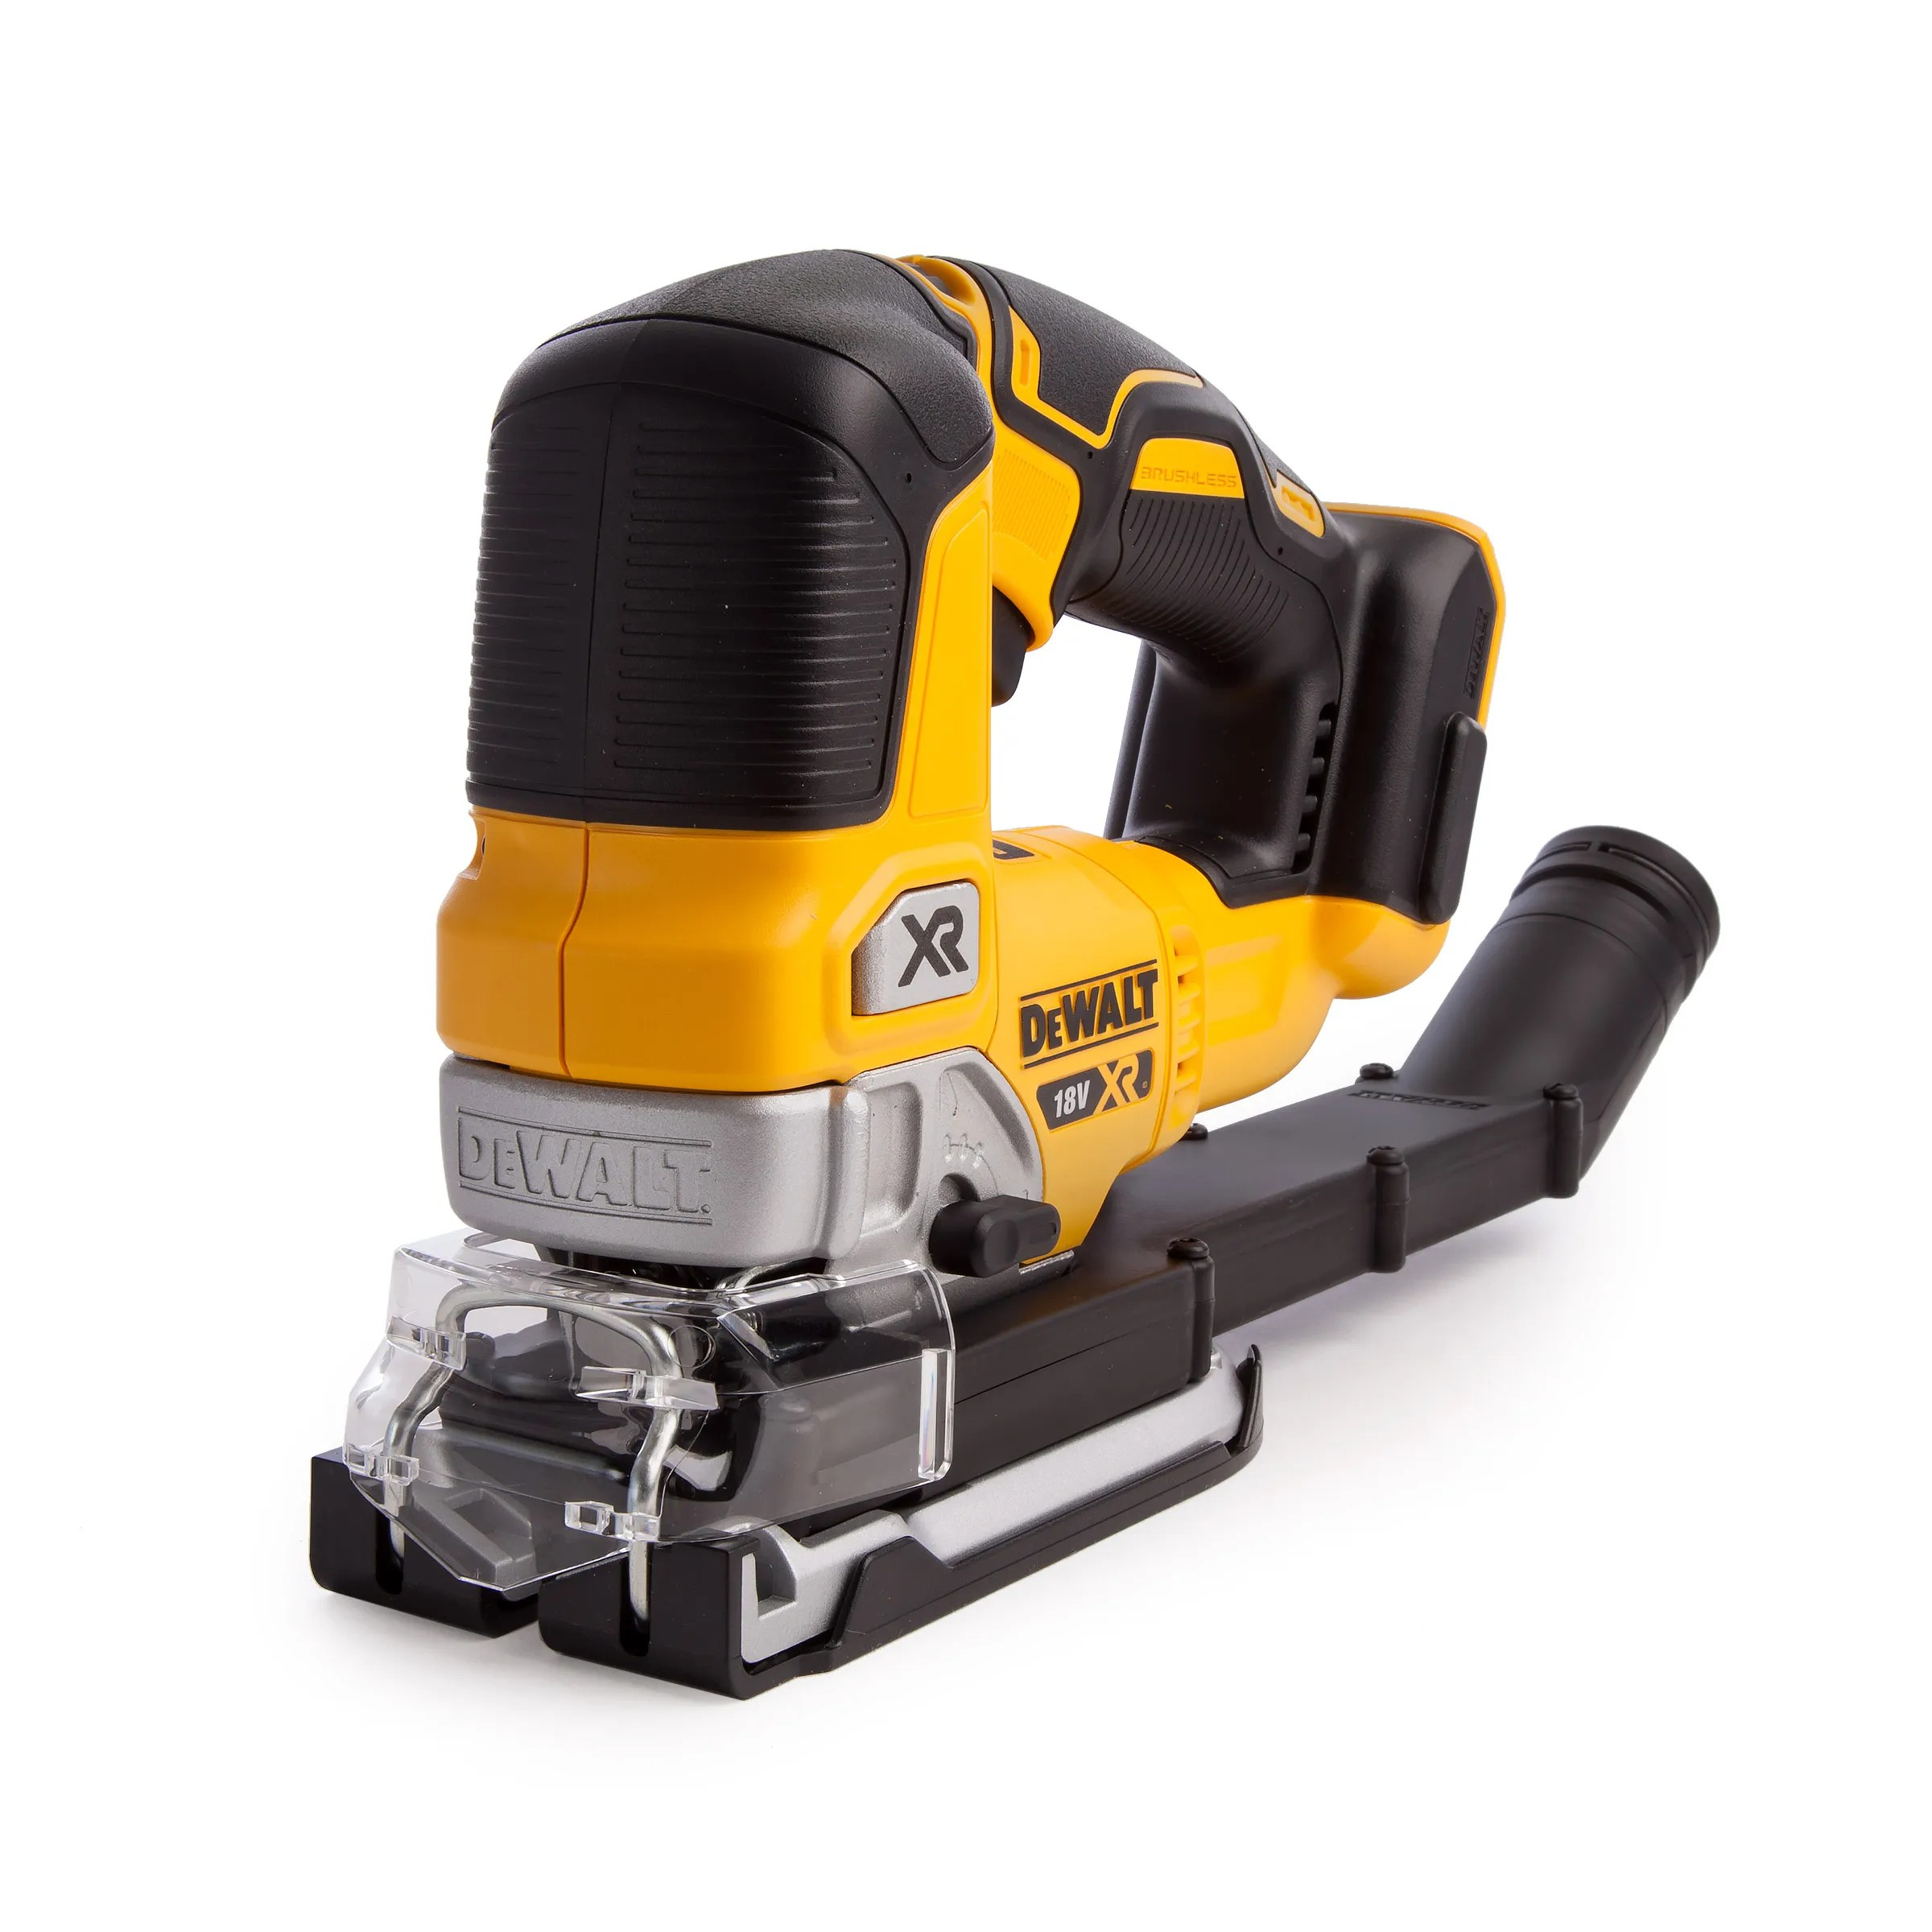 Dewalt Jigsaw Machine